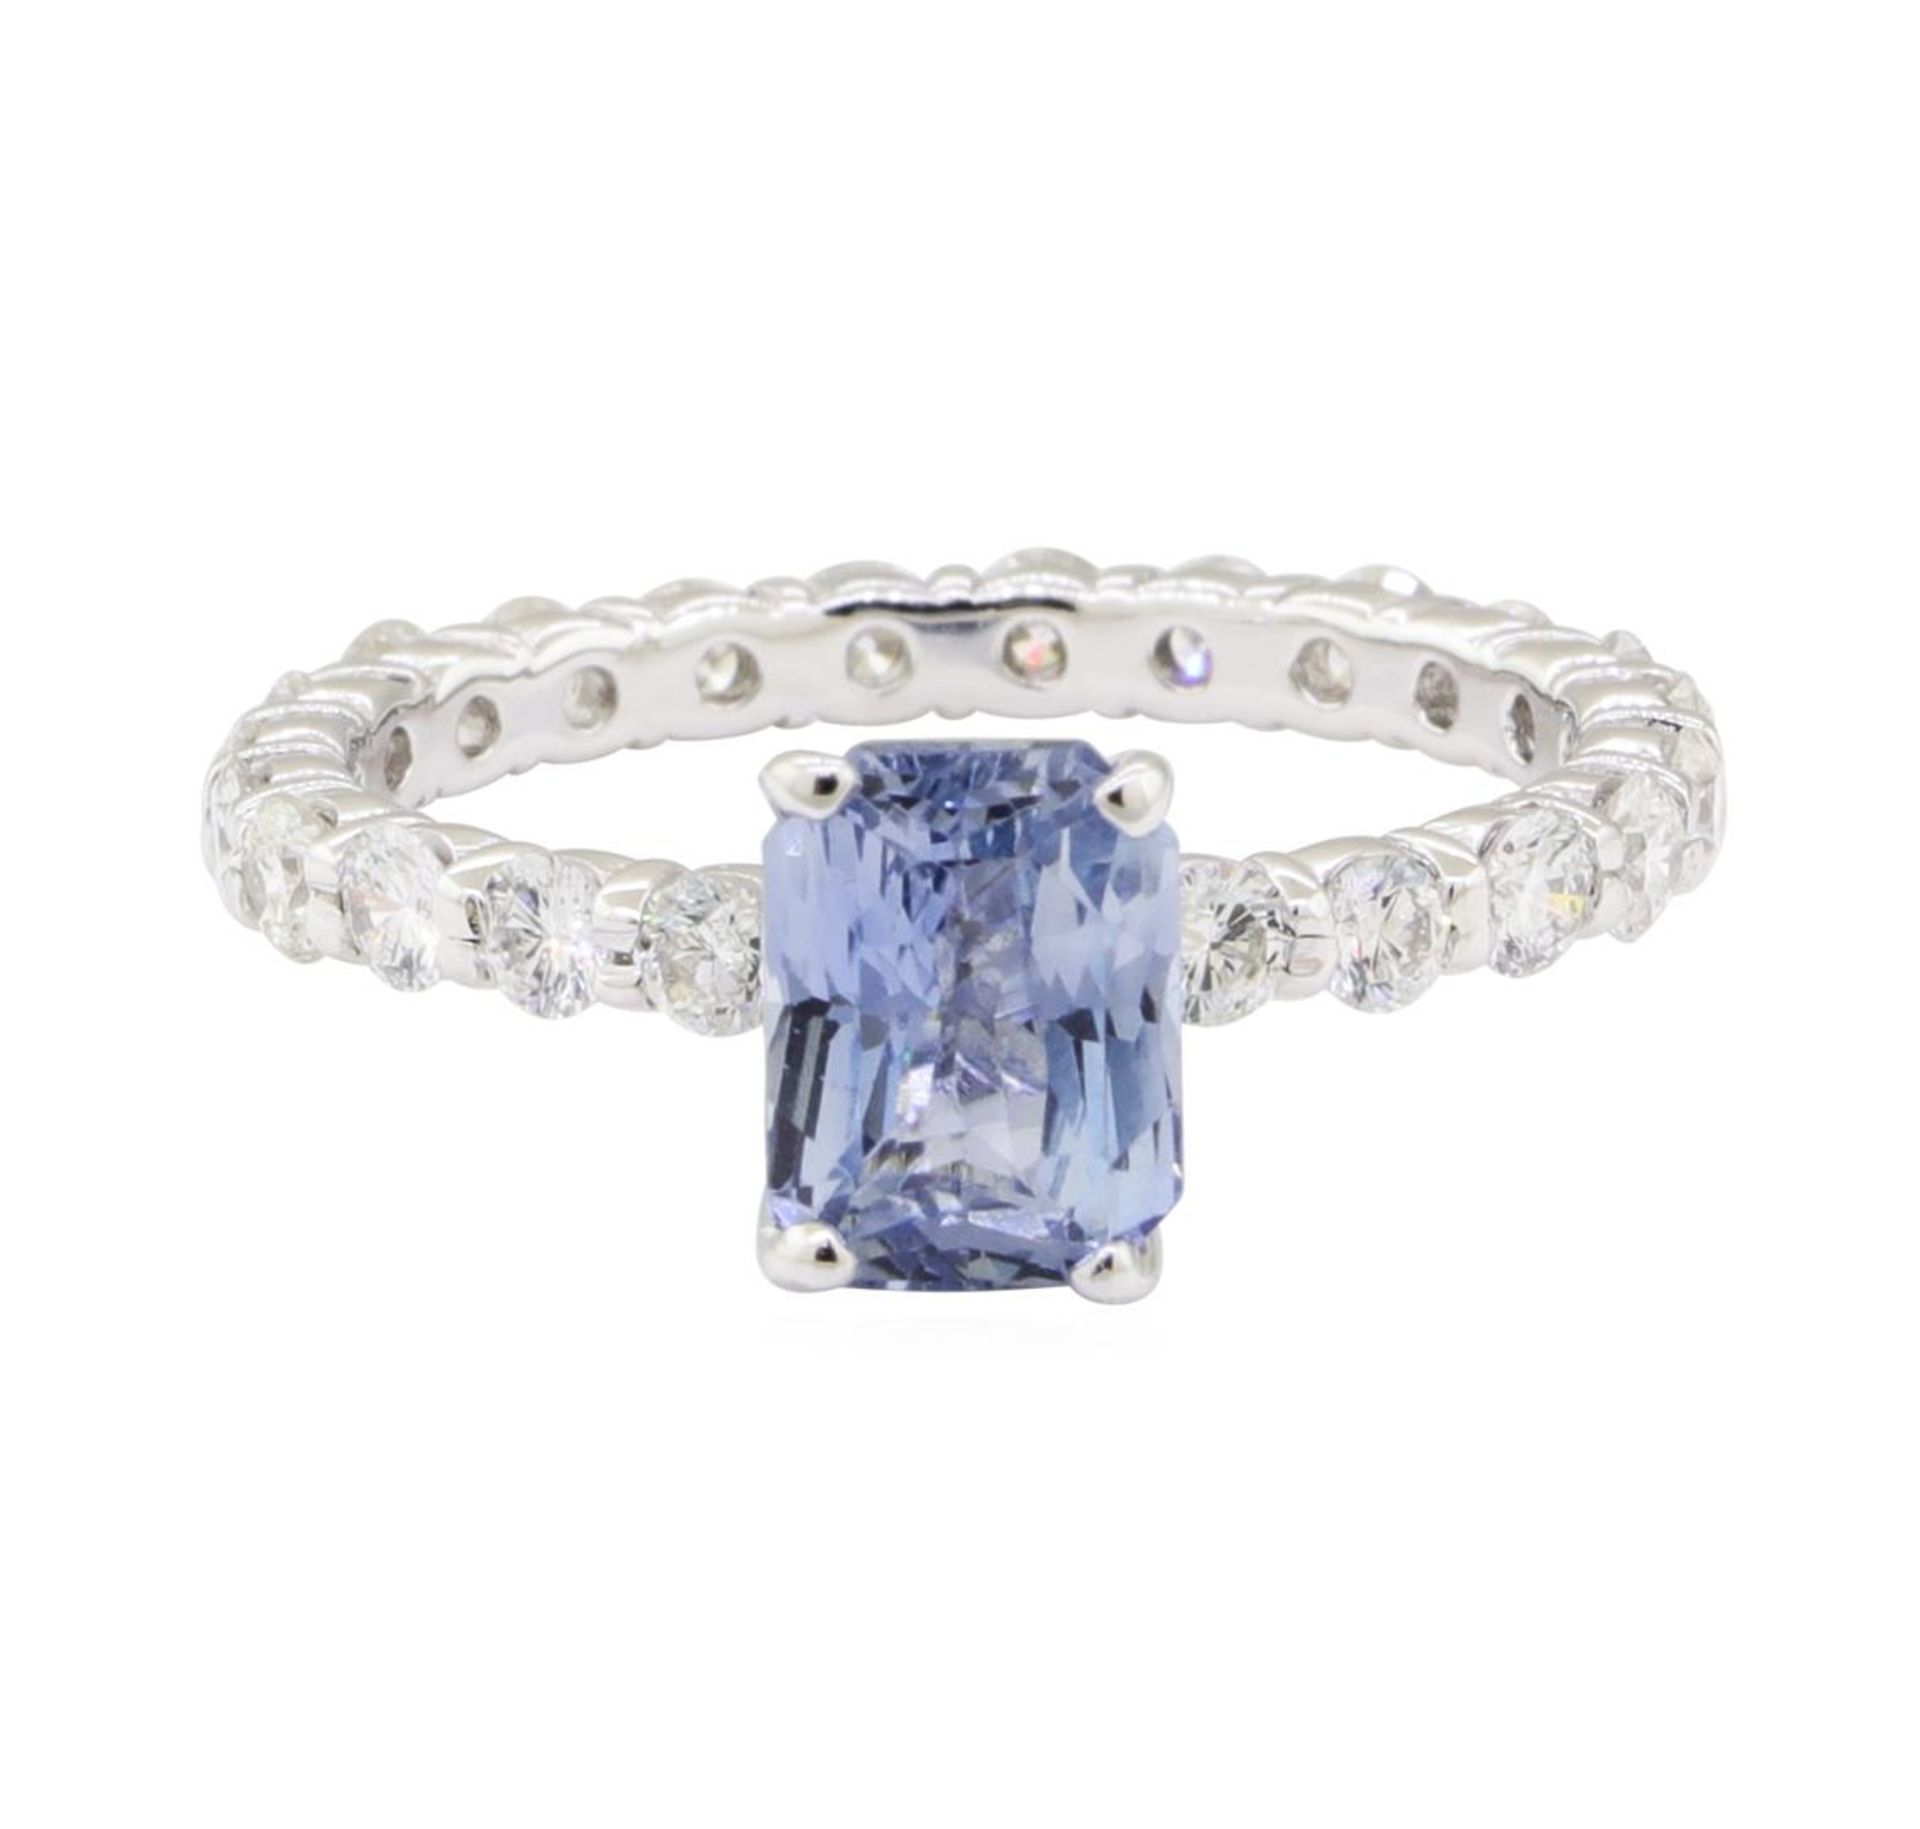 2.84 ctw Sapphire and Diamond Ring - 14KT White Gold - Image 2 of 5